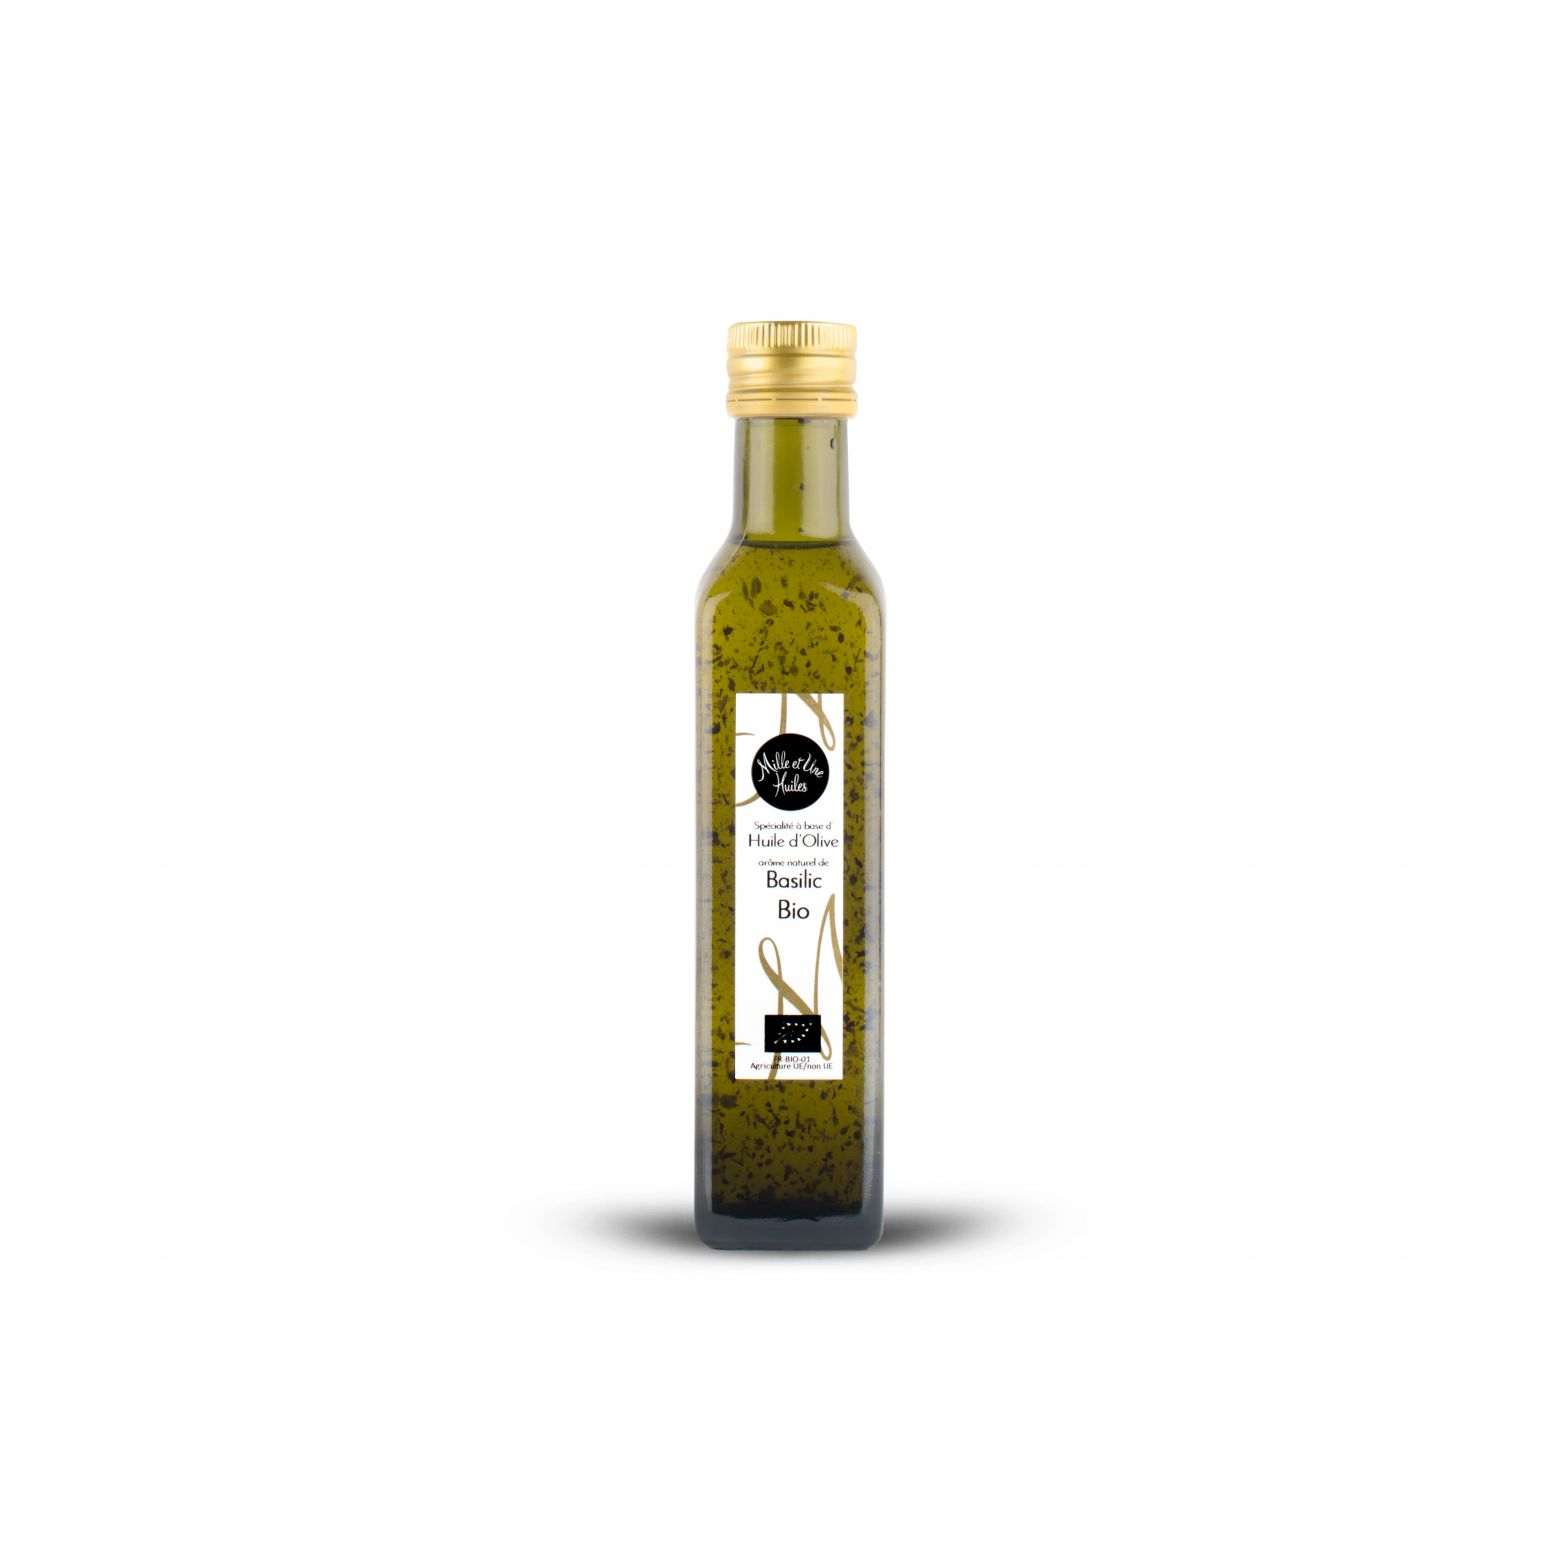 Organic basil-flavoured speciality with olive oil